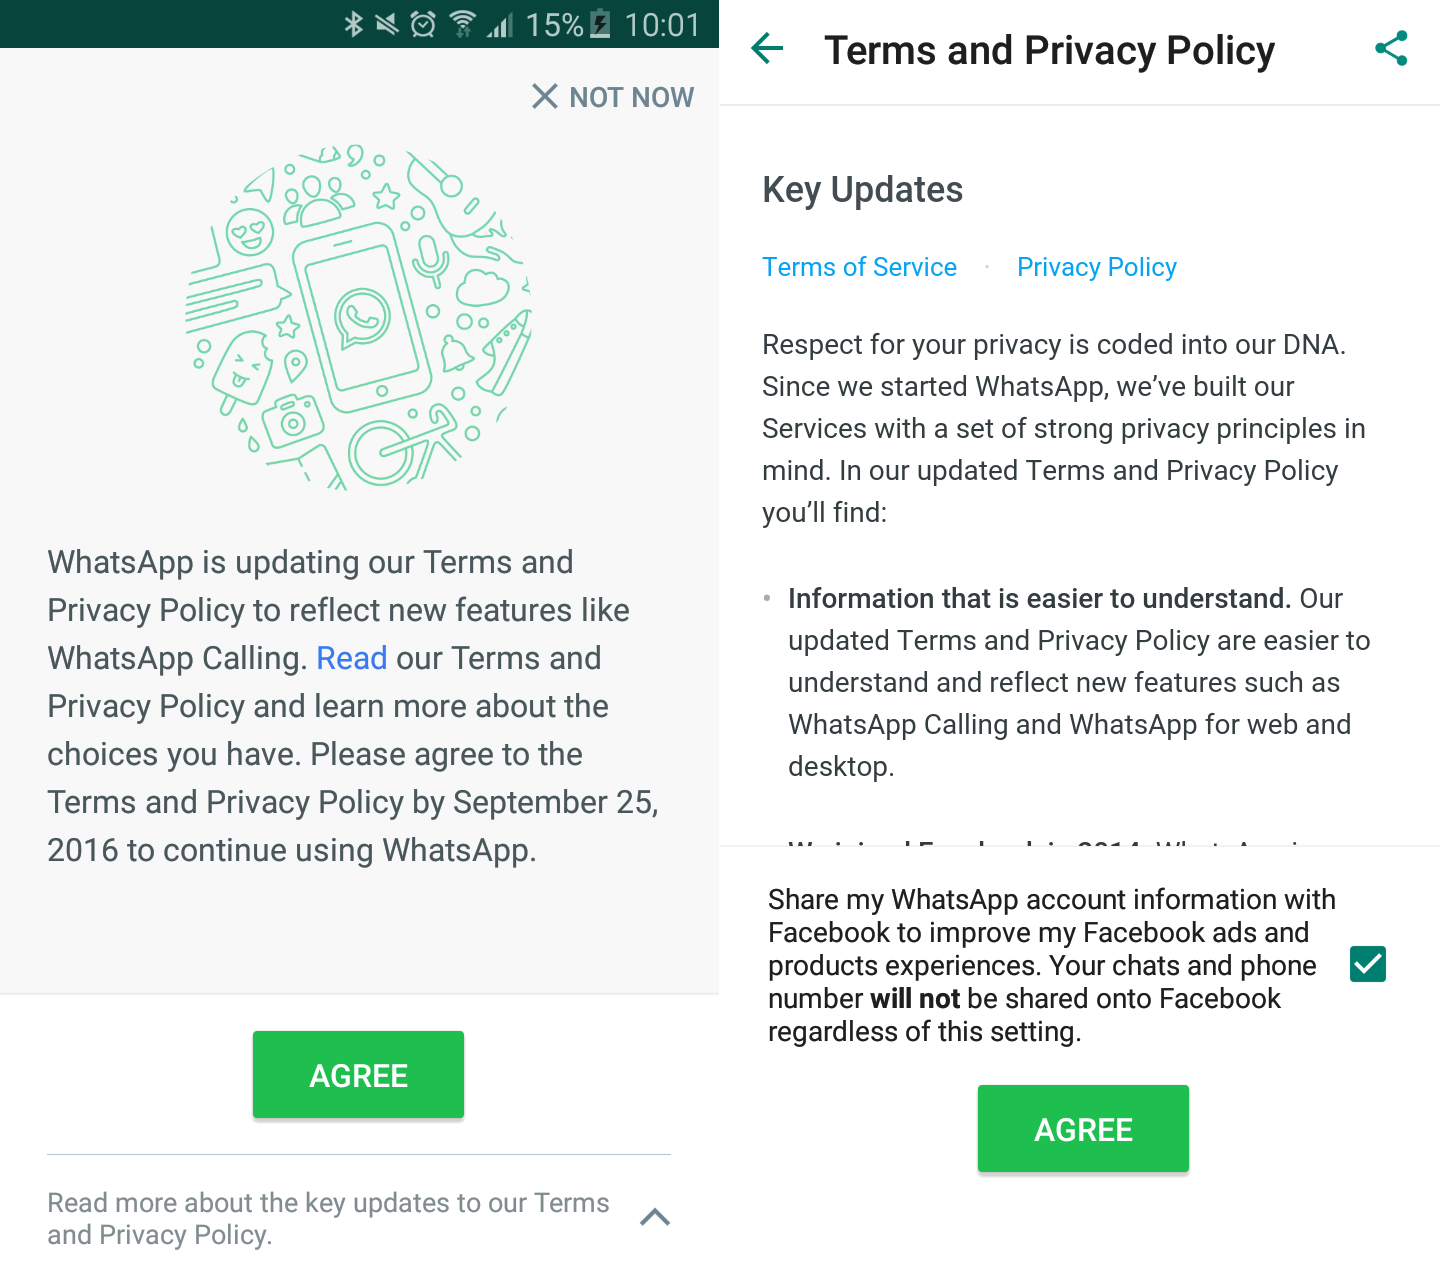 How to keep your WhatsApp info off Facebook